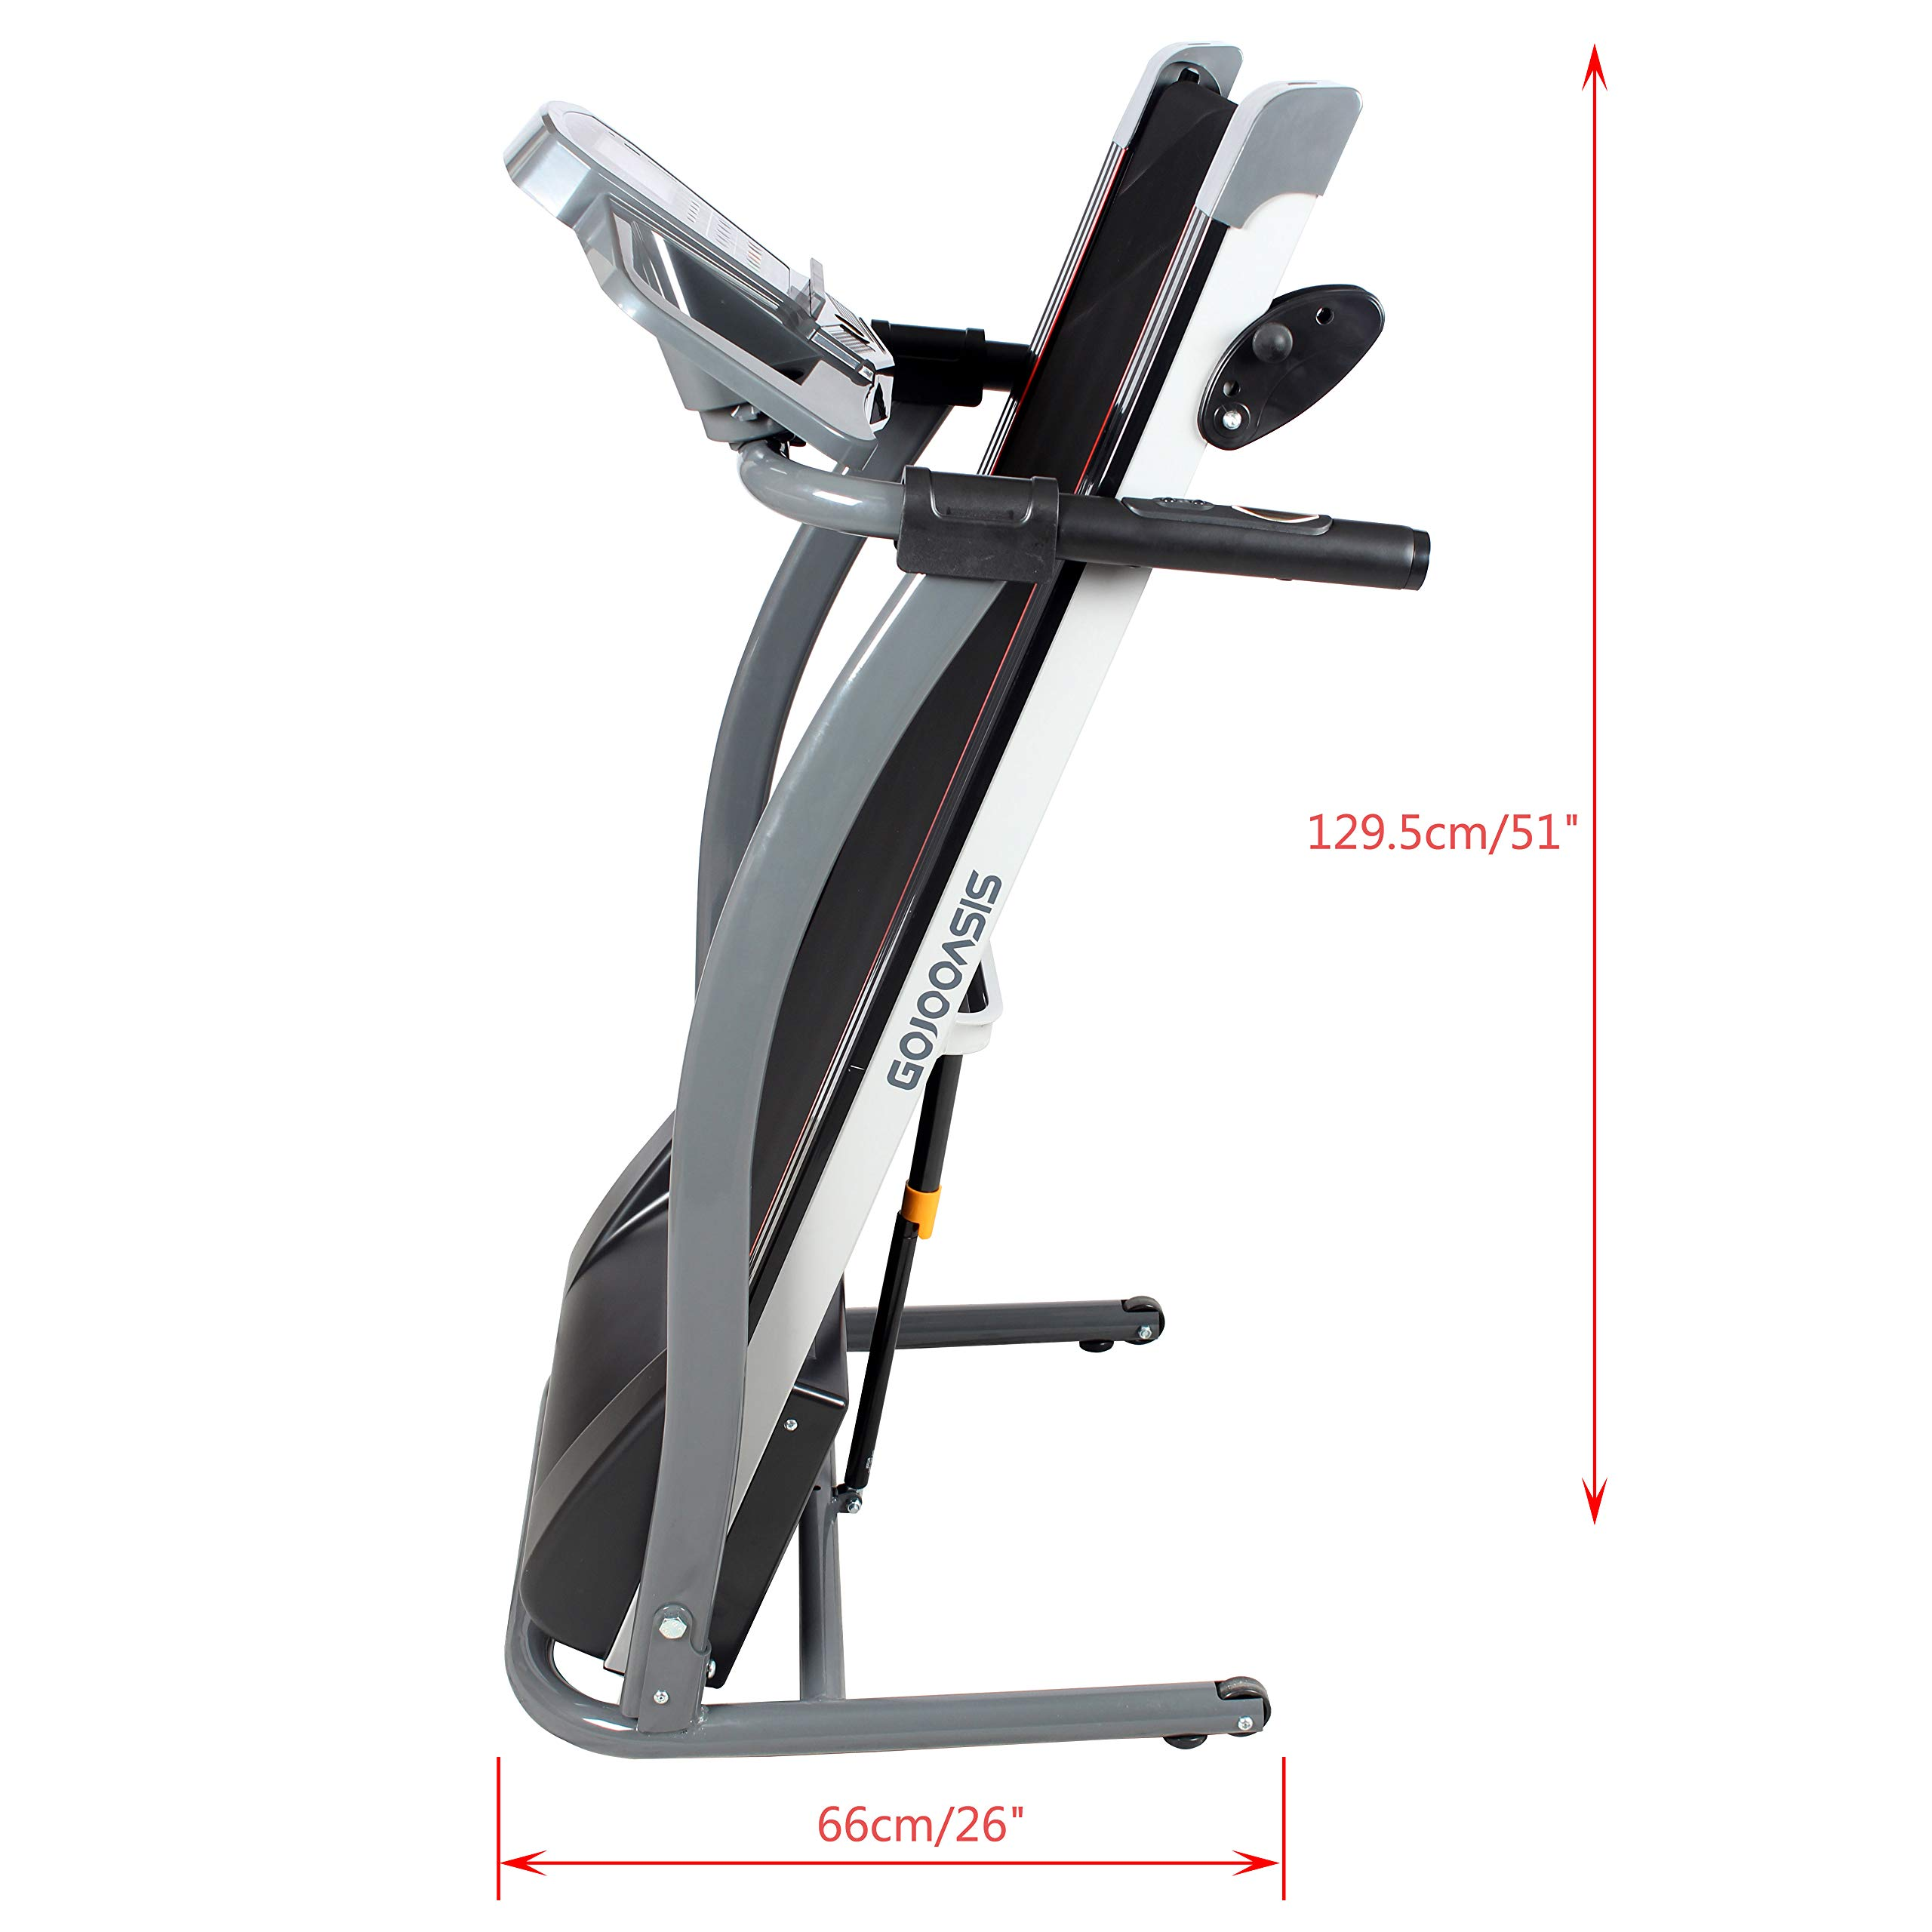 GOJOOASIS 2.0HP Treadmill Folding Motorized Running Exercise Machine w/Incline by GOJOOASIS (Image #5)